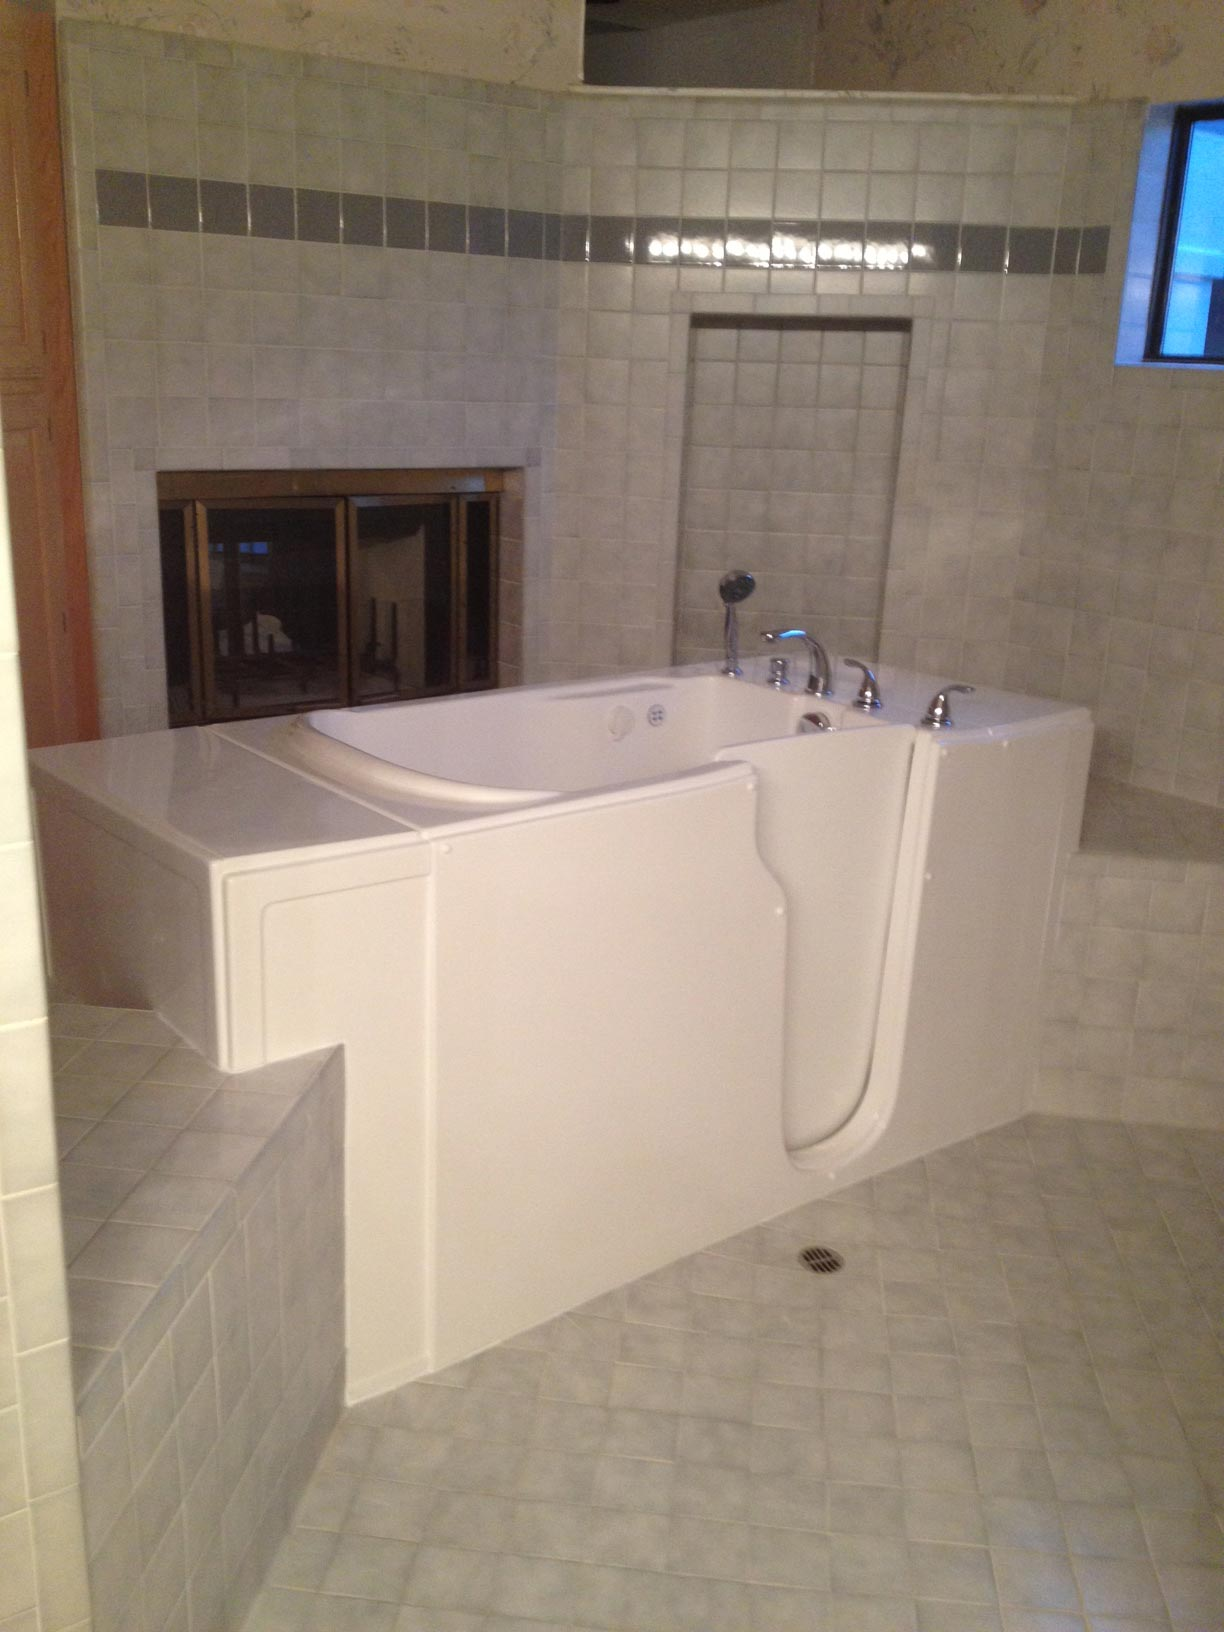 Made In The USA San Francisco TheraTub Walk-In Tubs-picture